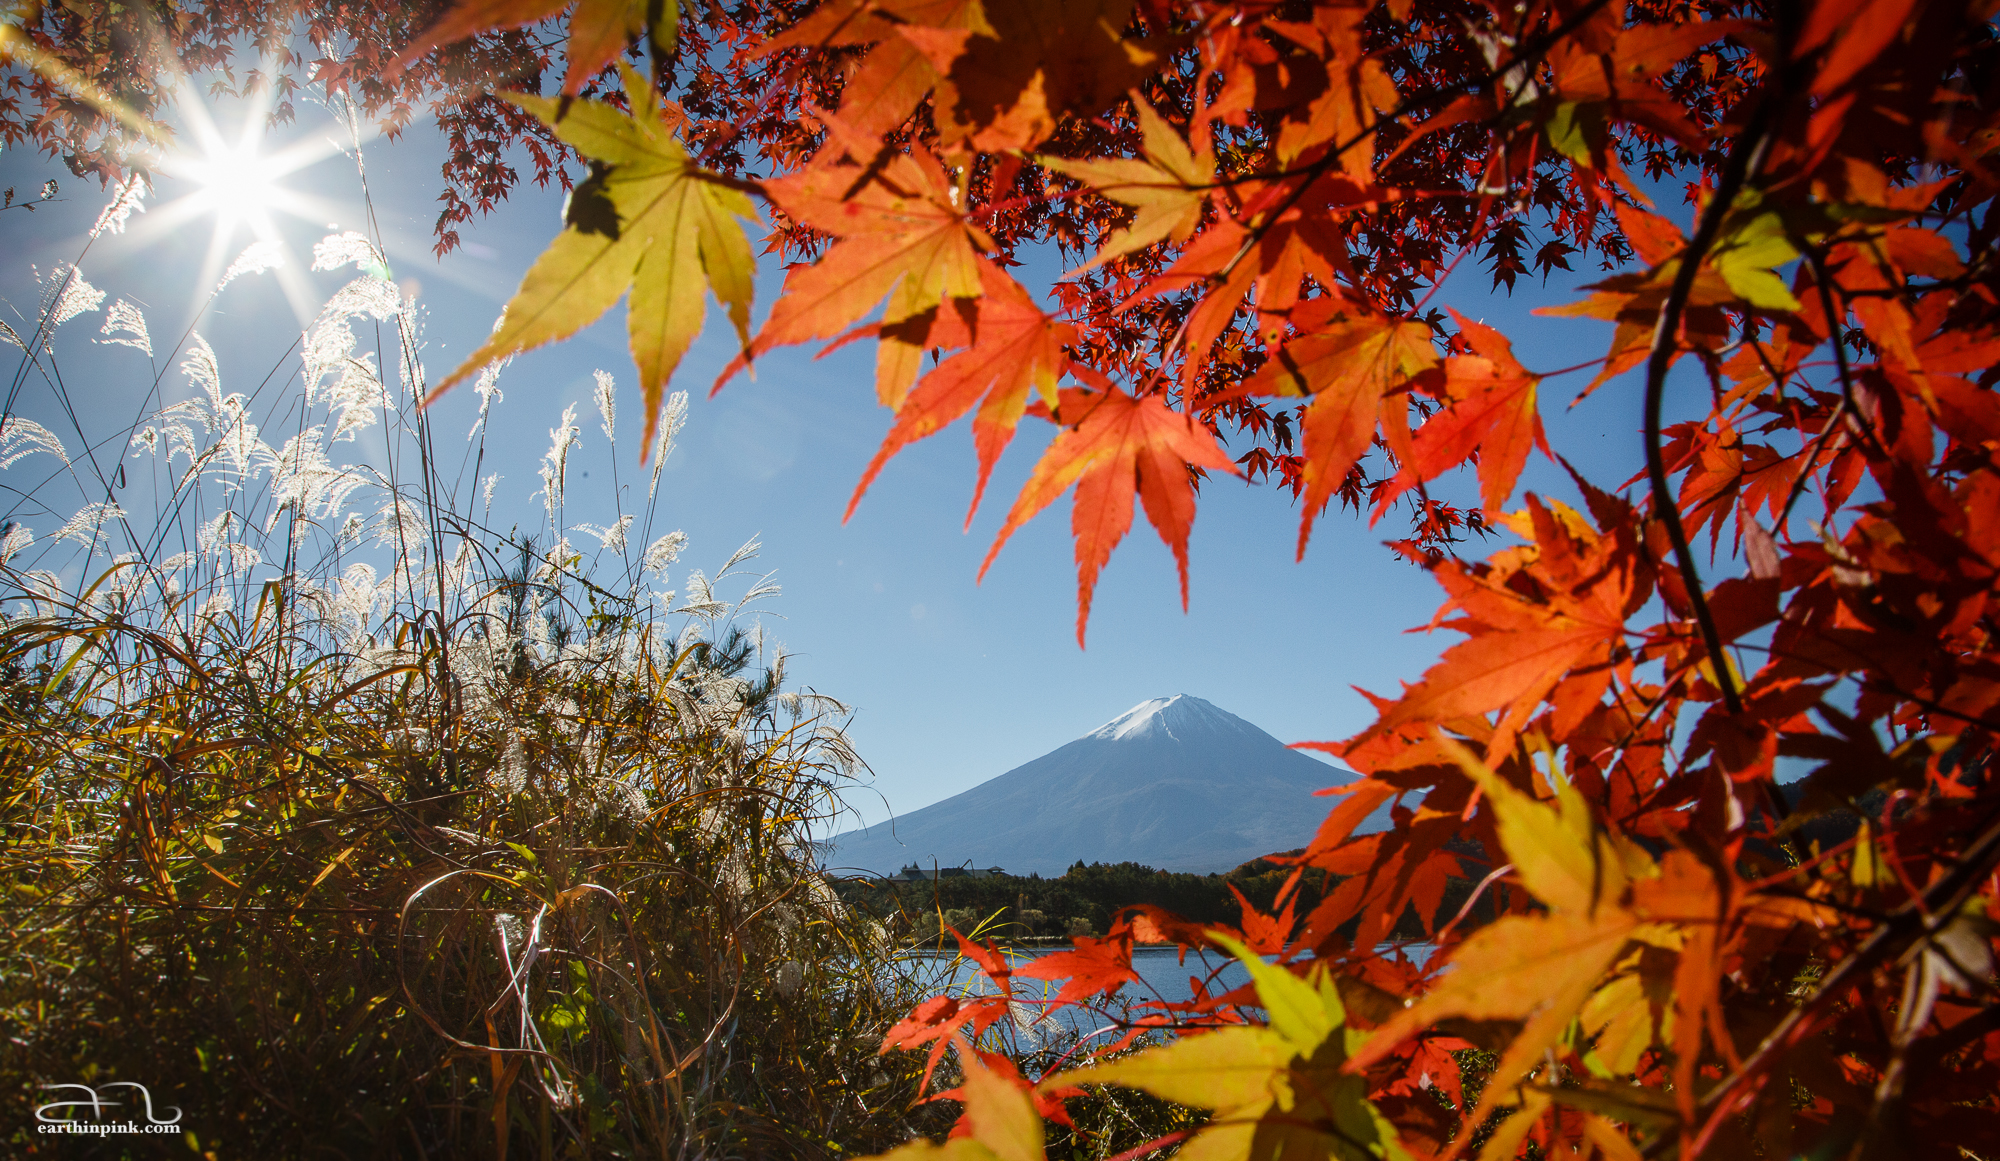 A morning view of colourful leaves, Mt. Fuji, and Lake Kawaguchiko.